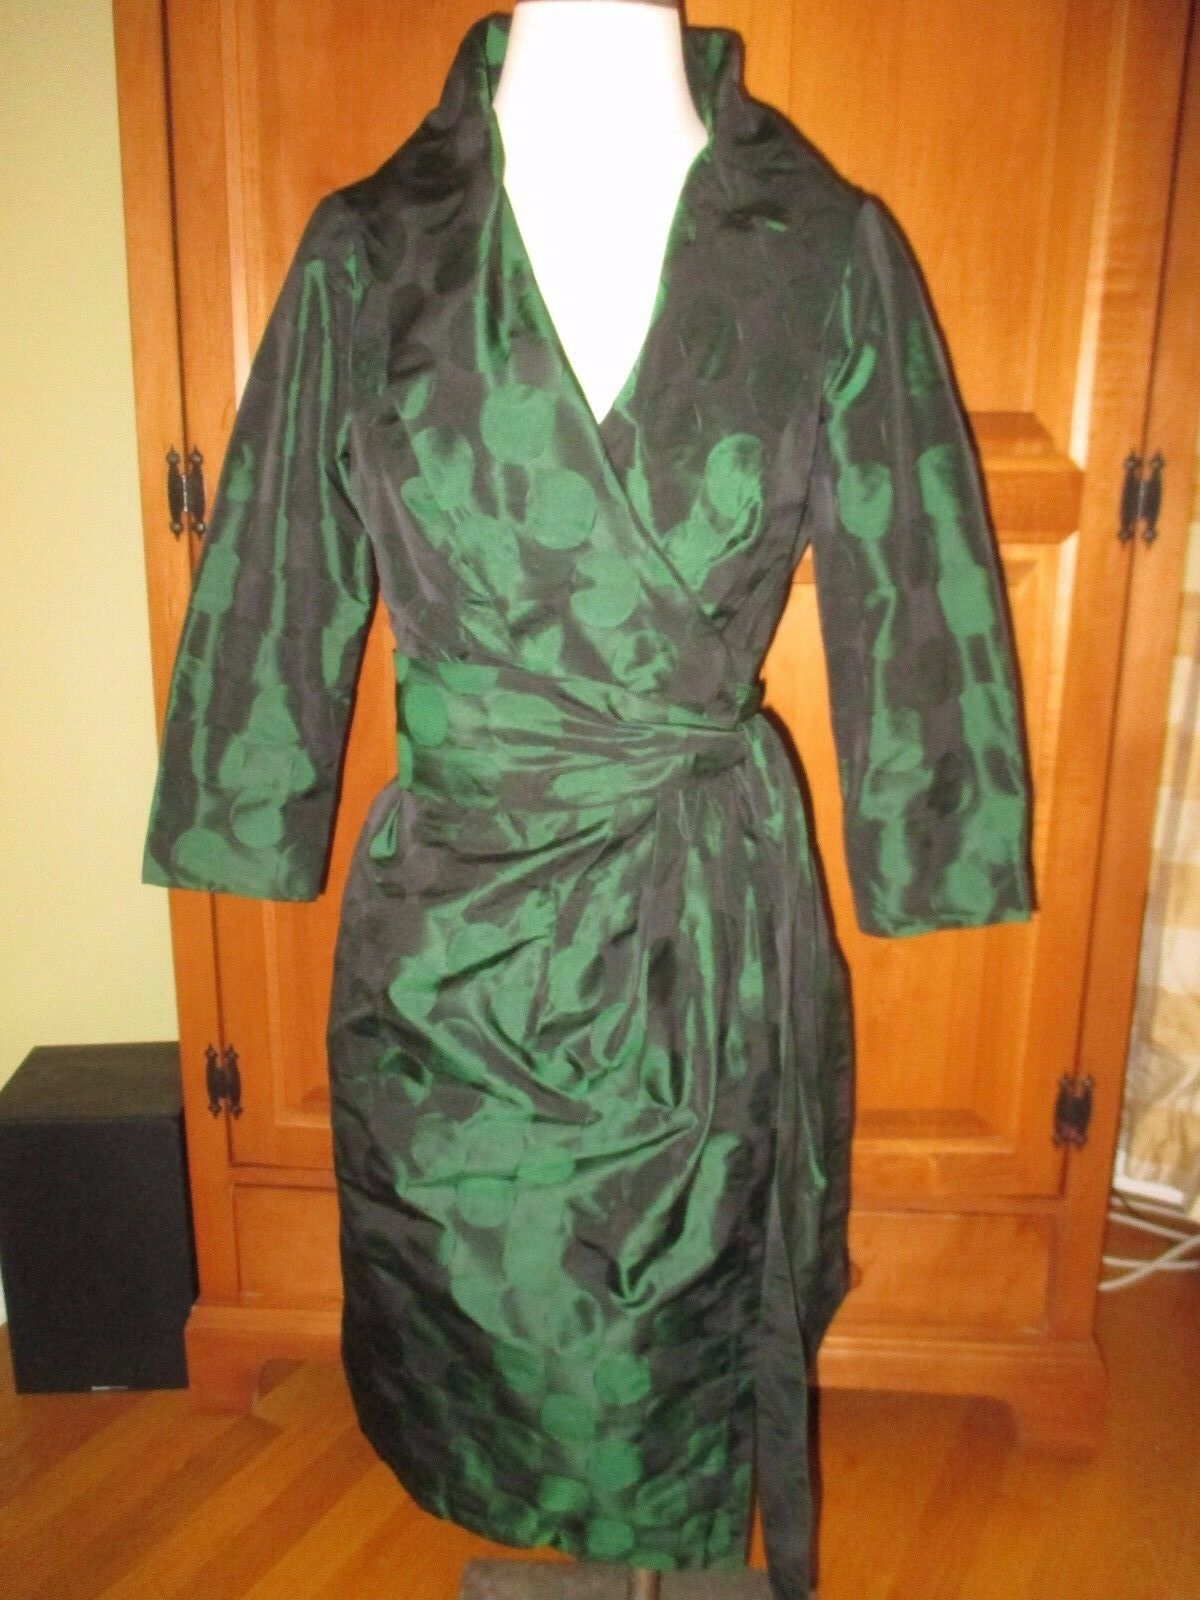 EUC Ladies Carlisle Jewel Emerald Green Silk Taffeta Wrap Dress Size 4